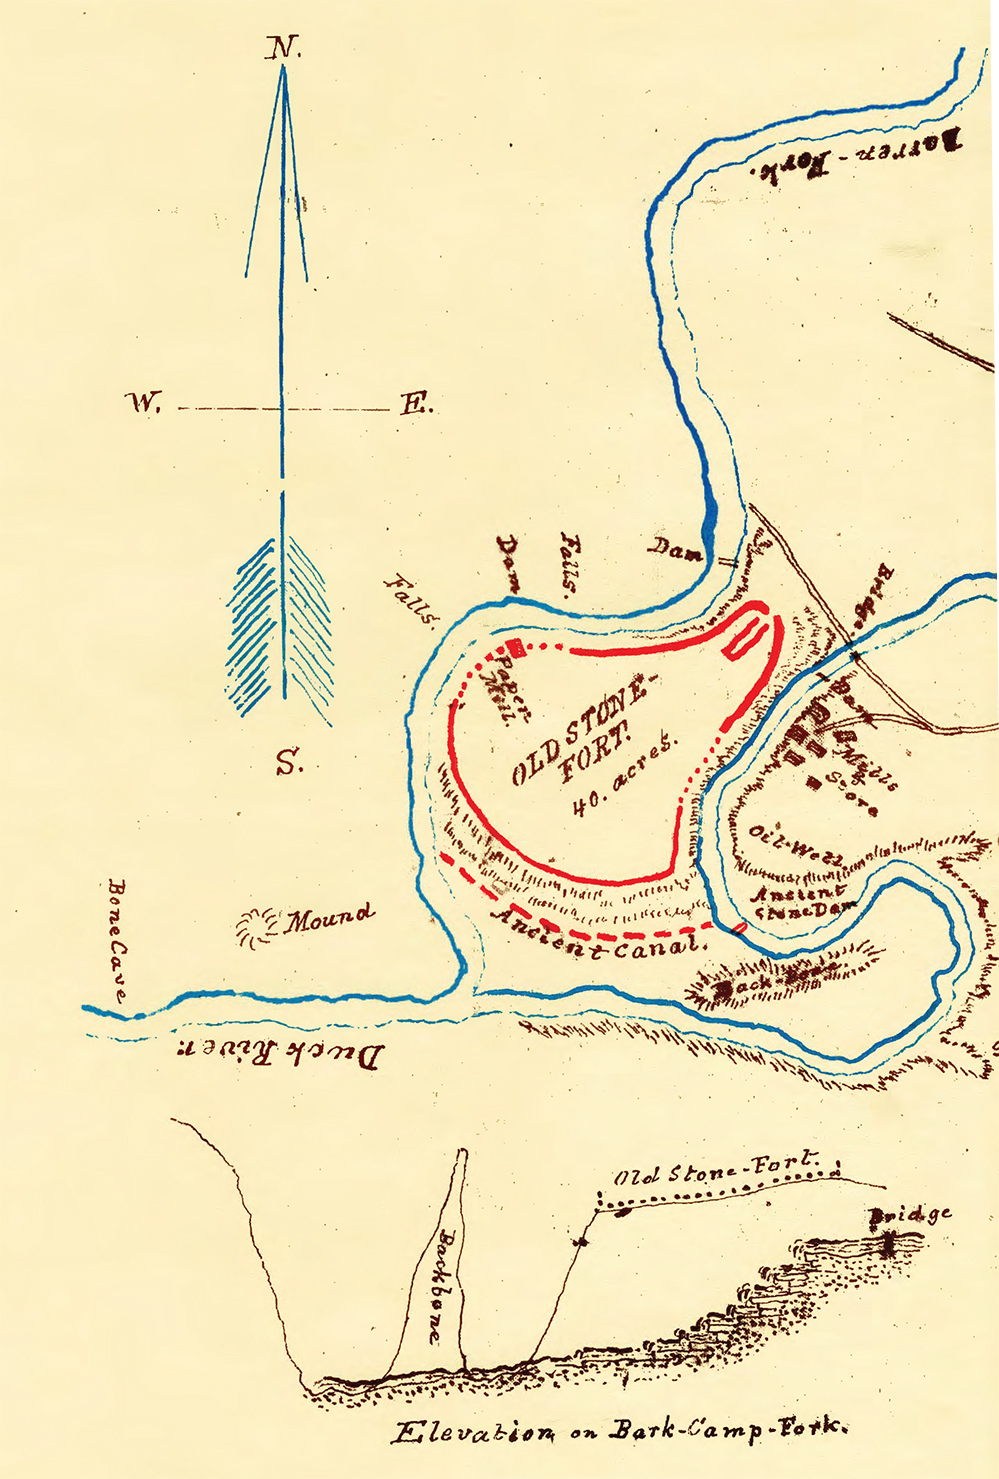 1870 map of the Old Stone Fort by Alexander Kocsis